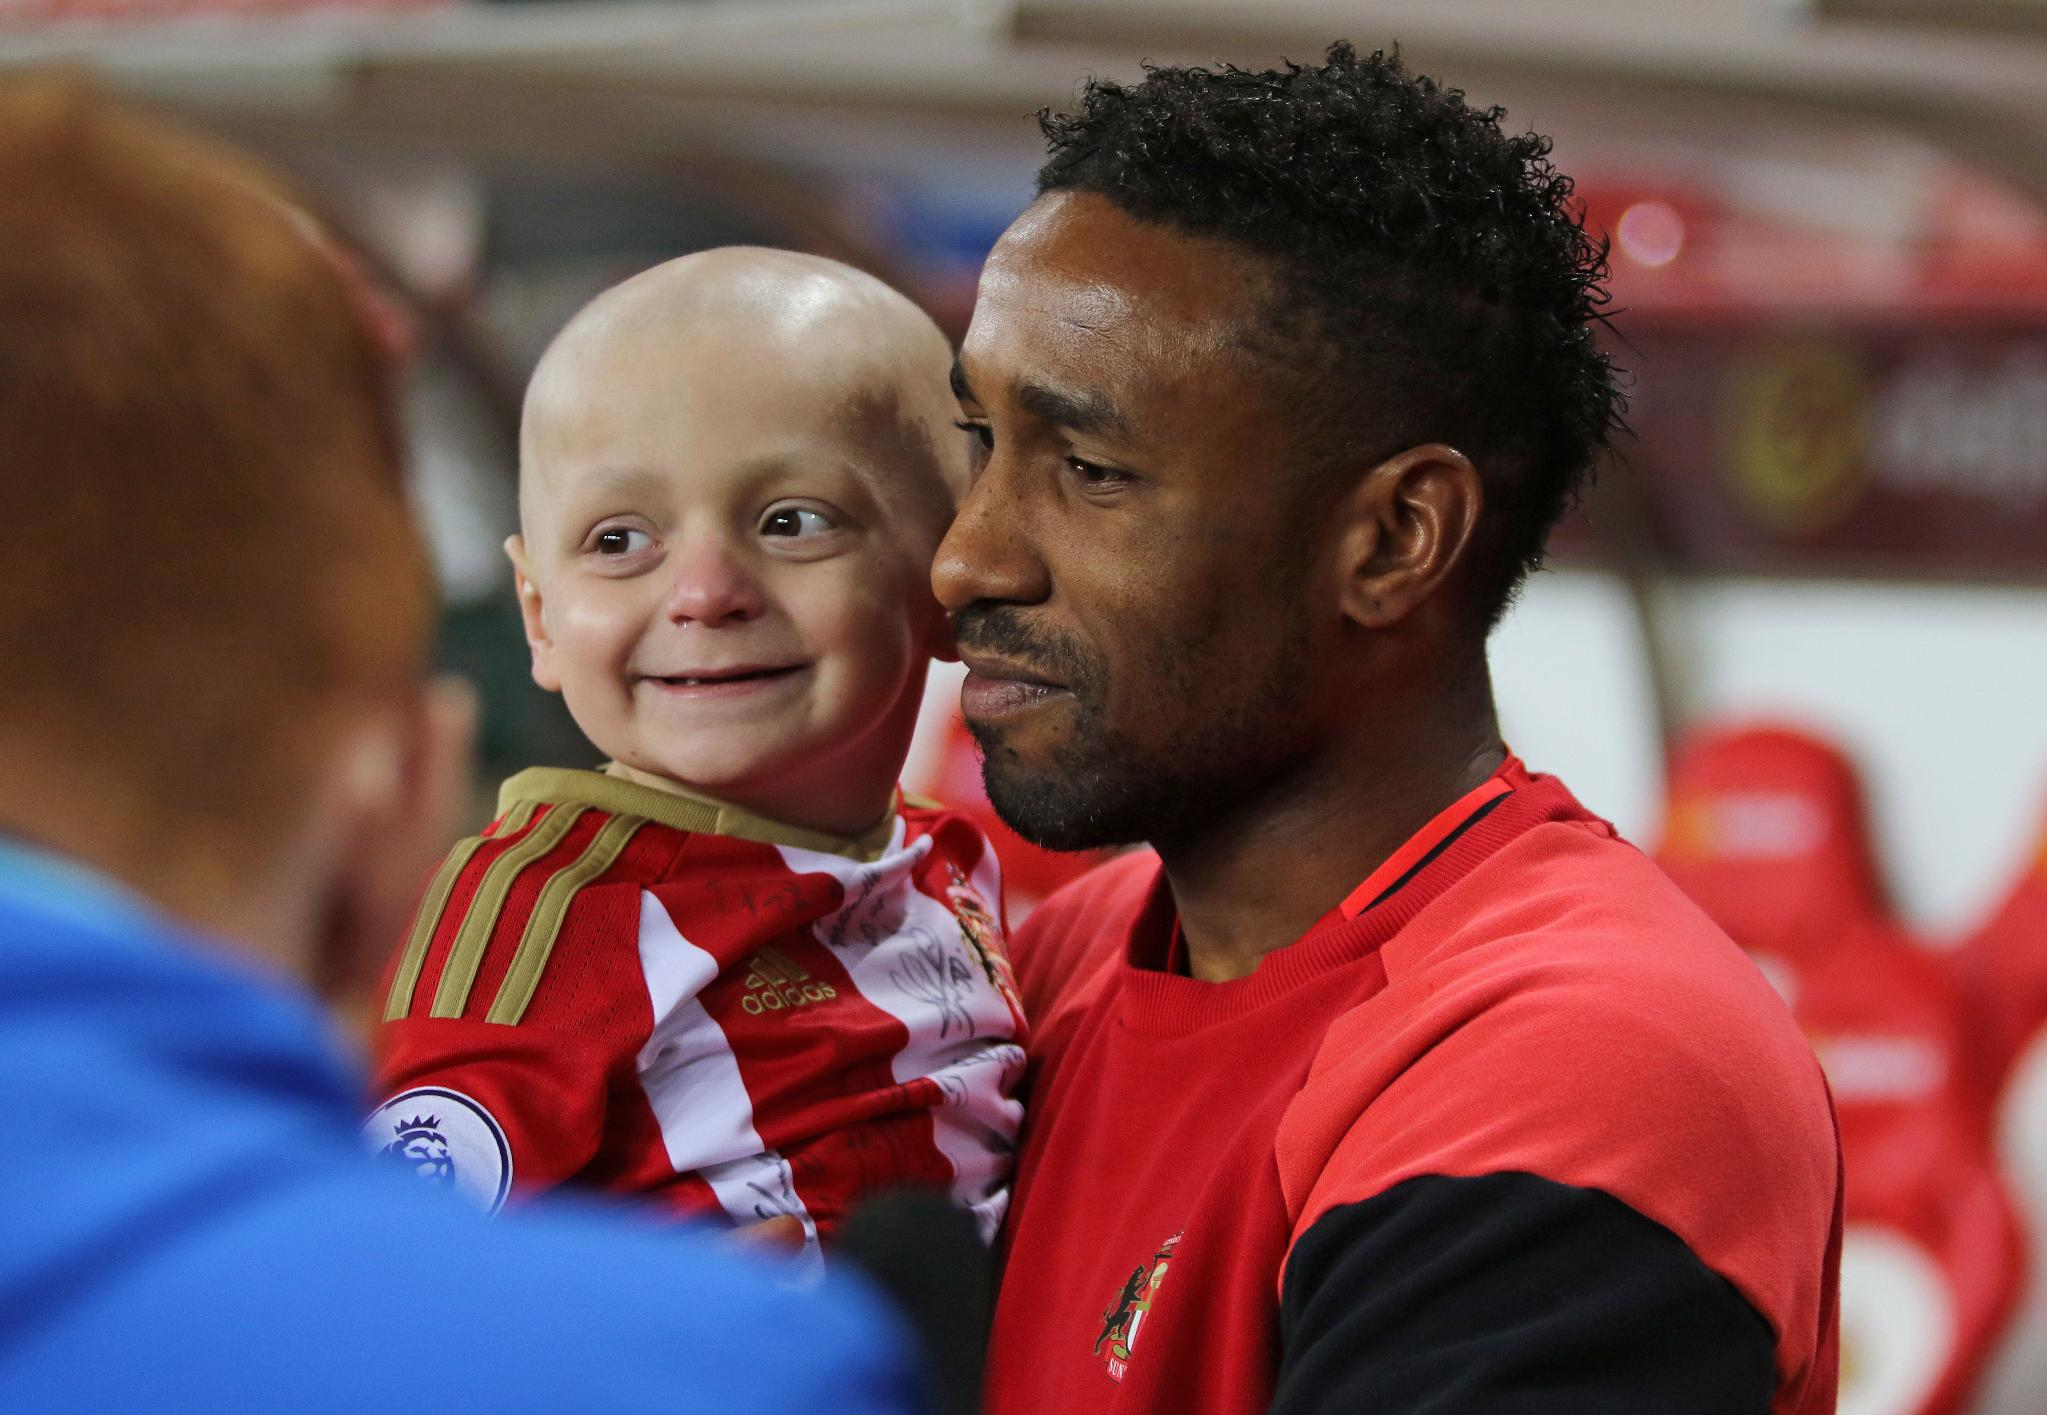 Sunderland Mascot Bradley Lowery, 6, Dies Of Cancer